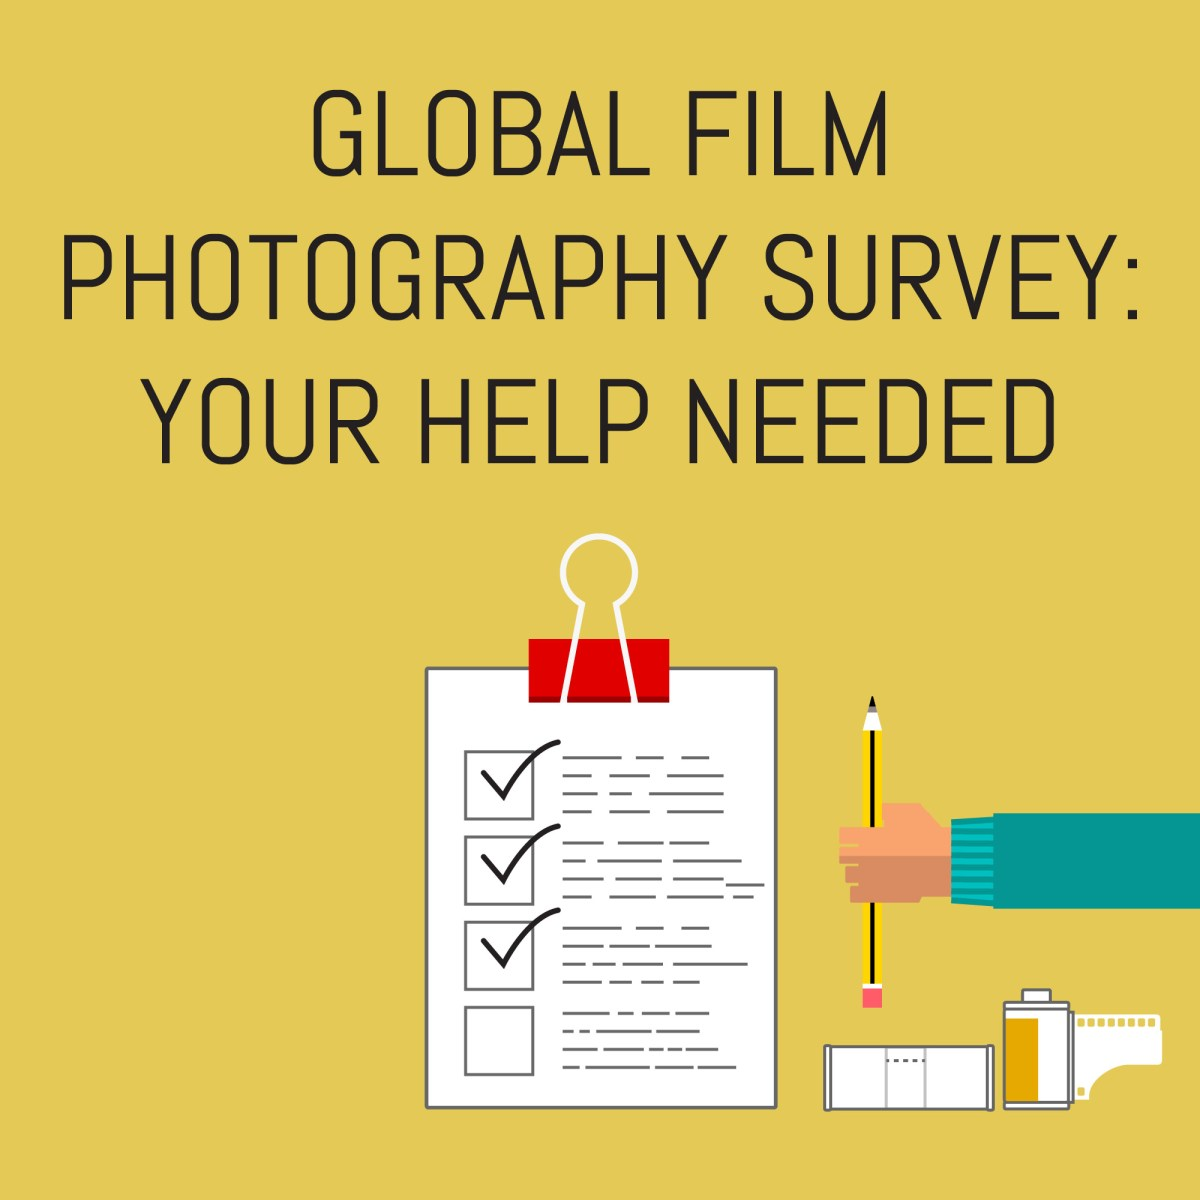 Global film photography survey: Your help needed